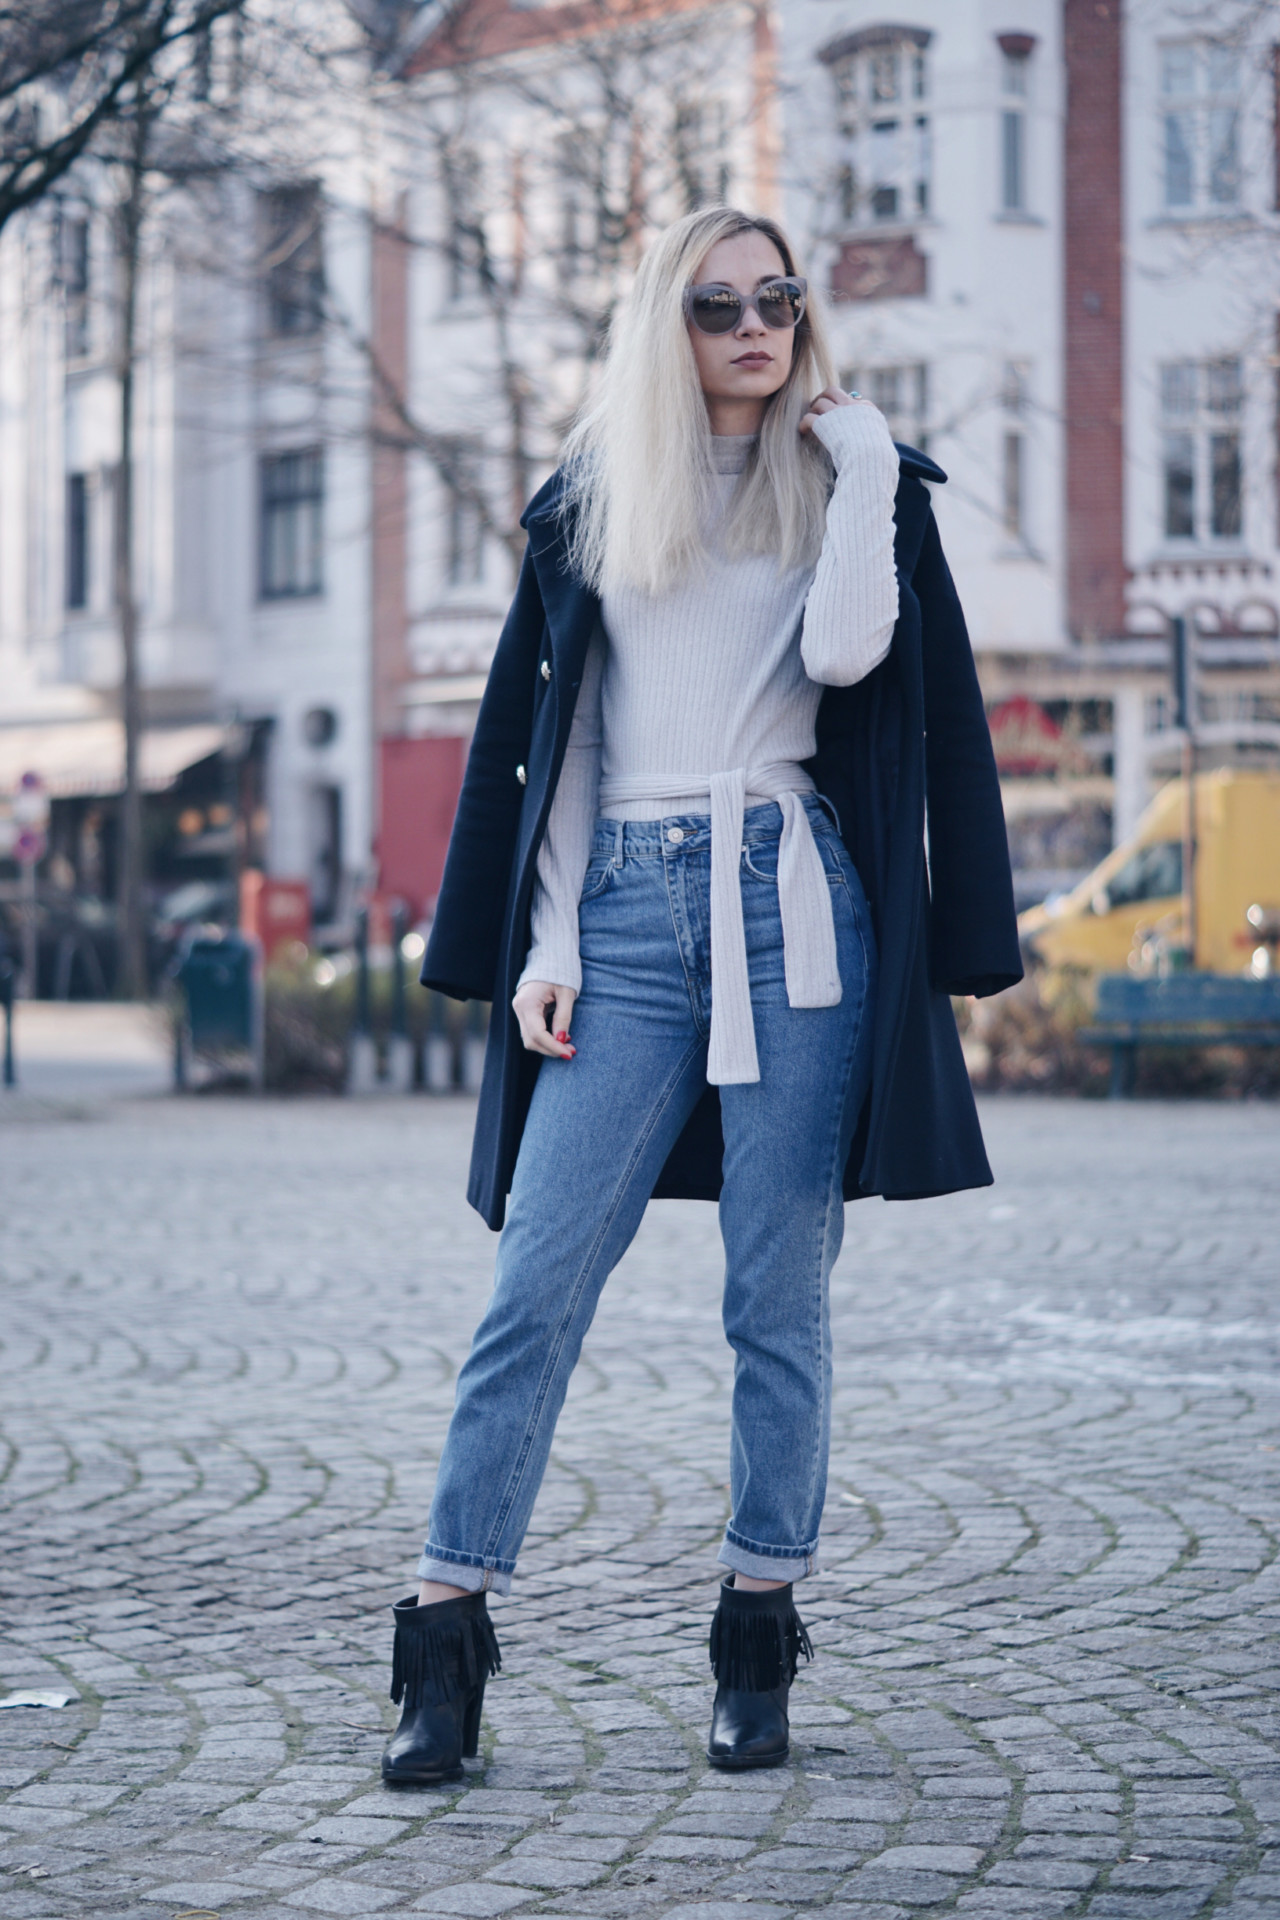 dbkstylez_streetstyle_lavish_Alice_trends2018_topblog_fashion